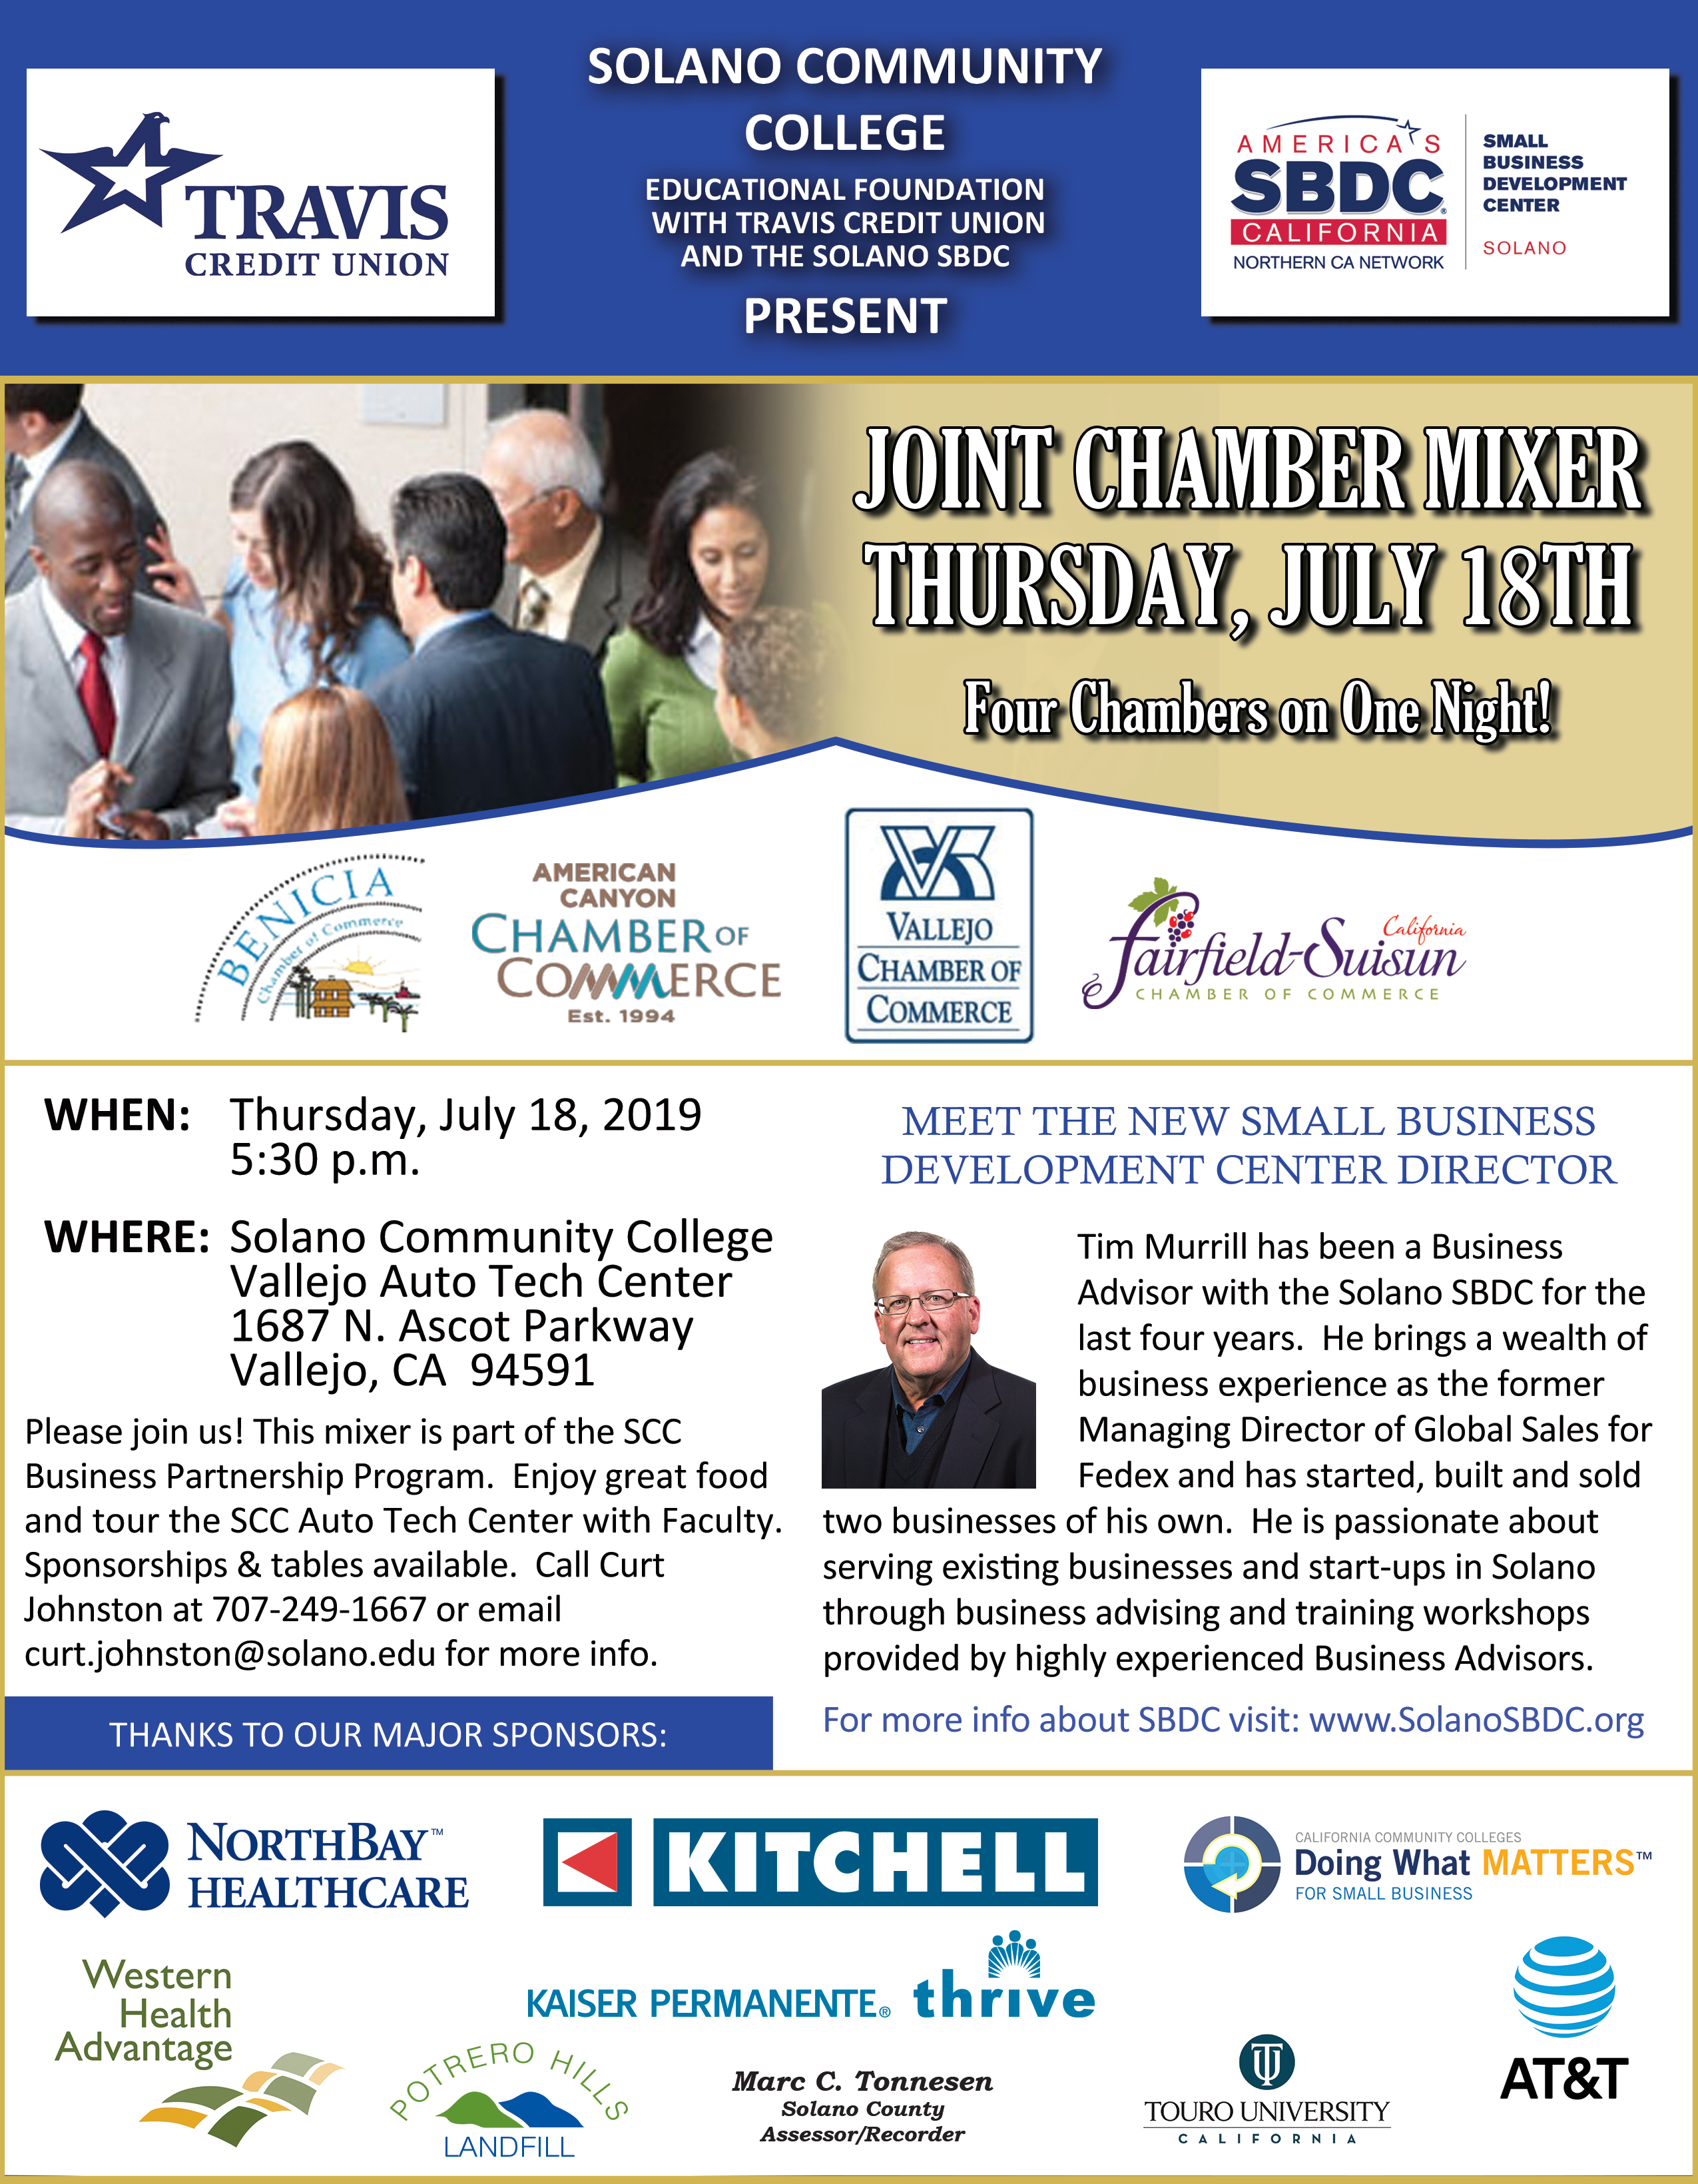 scc-joint-chamber-mixer-july-2019